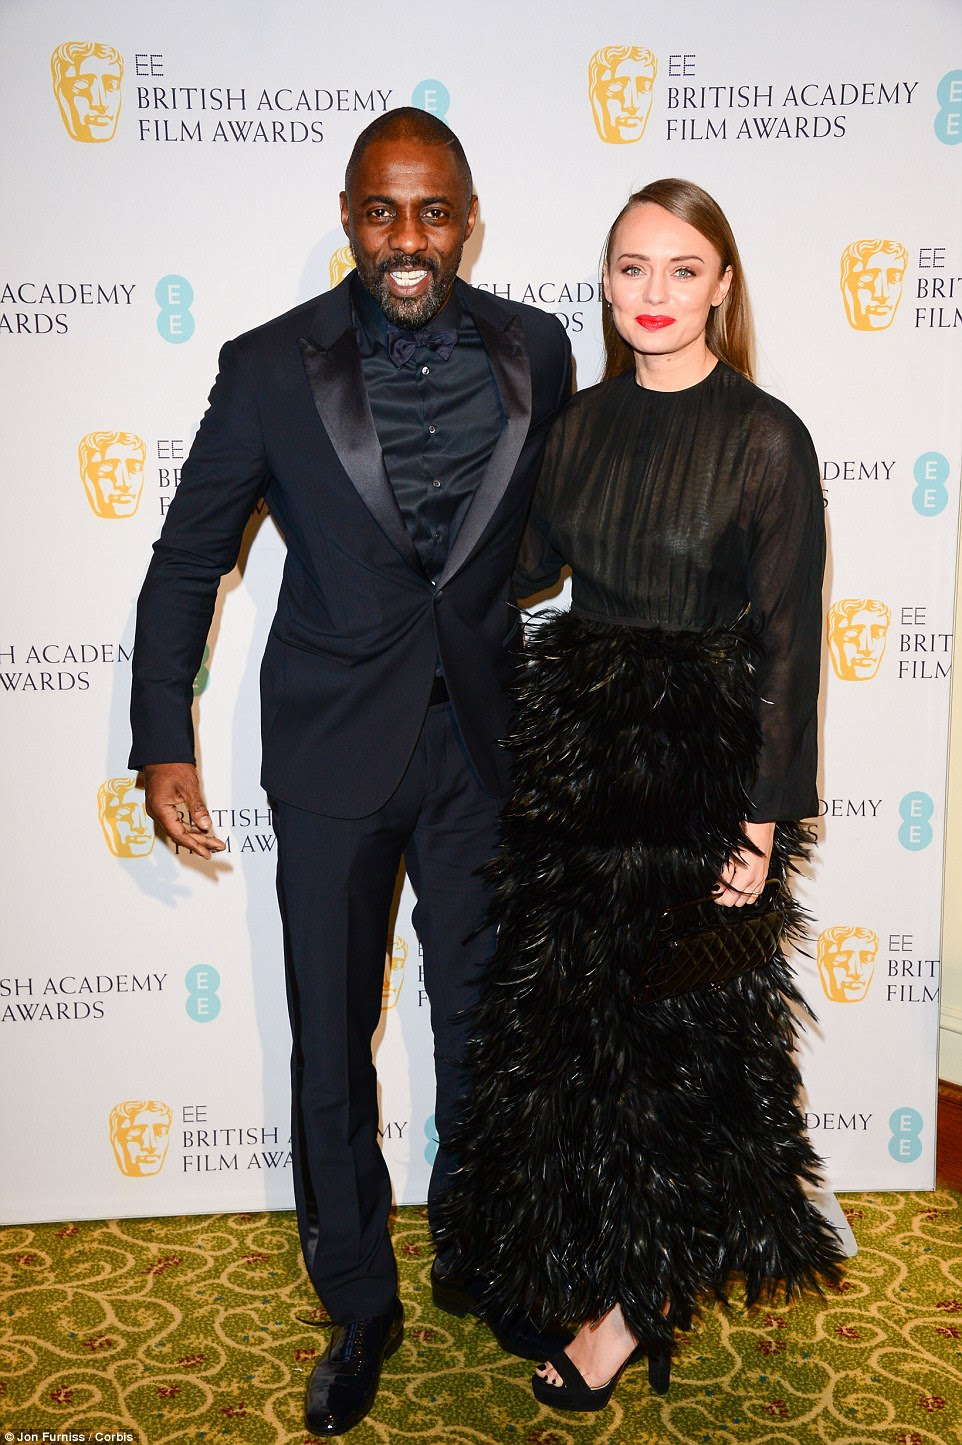 Rubbing shoulders with the stars: Laura looked overjoyed to pose with superstar Idris Elba